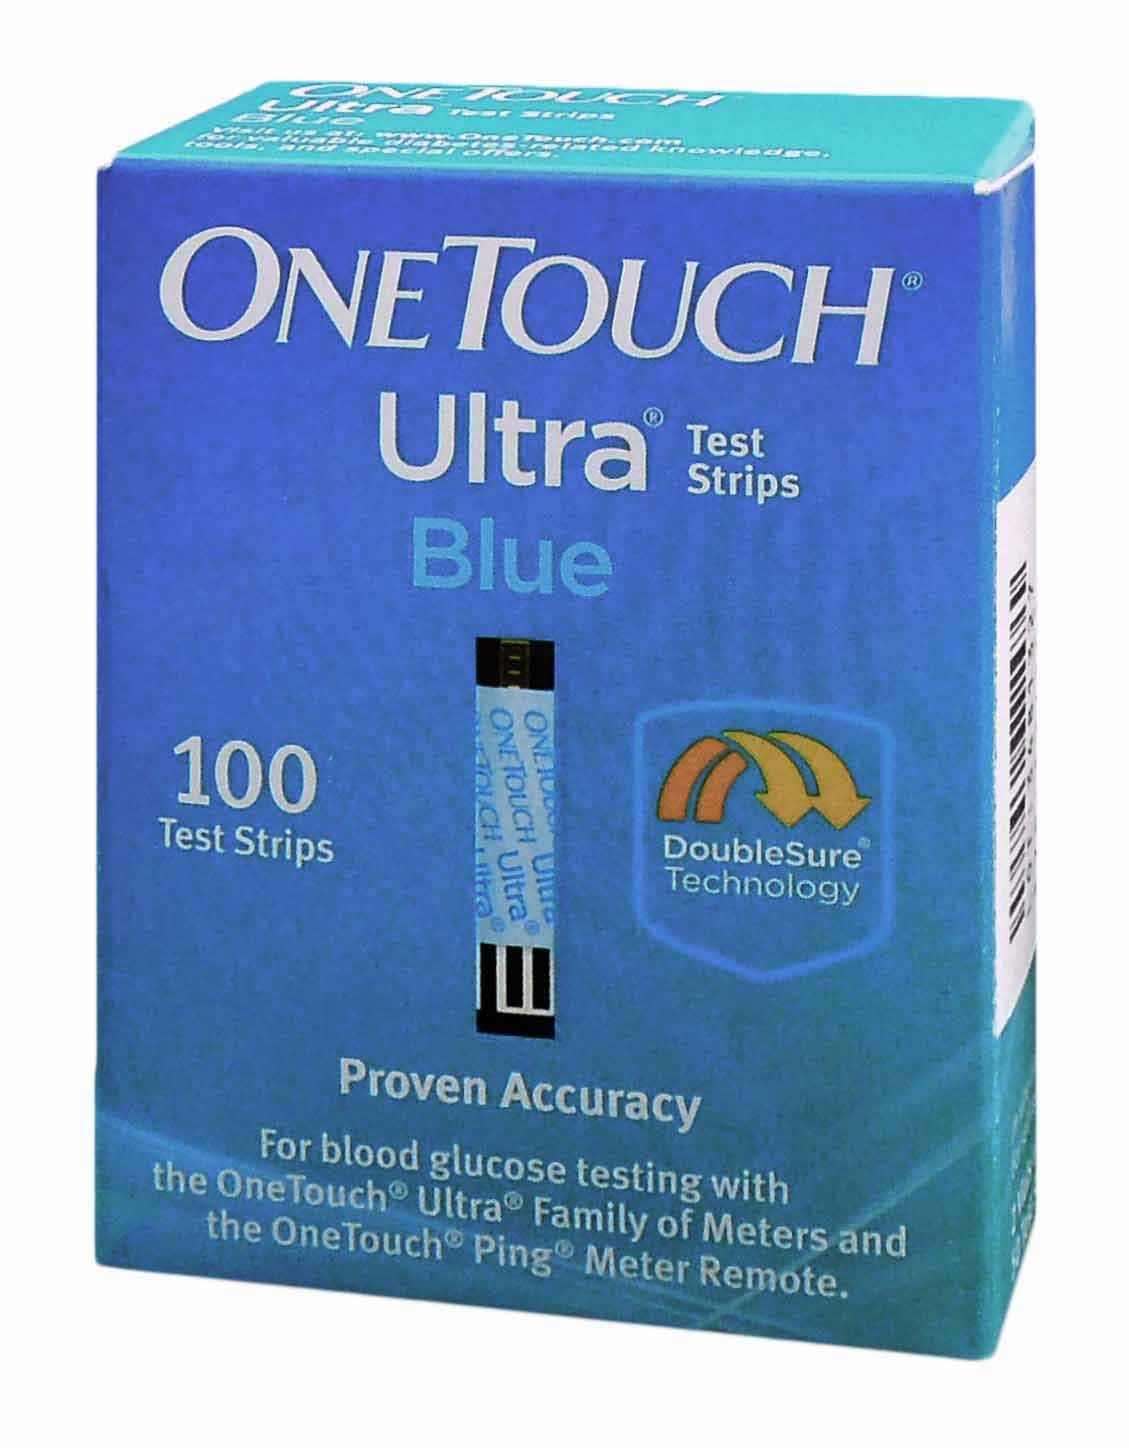 One Touch Ultra Test Strip Blue 100 ct